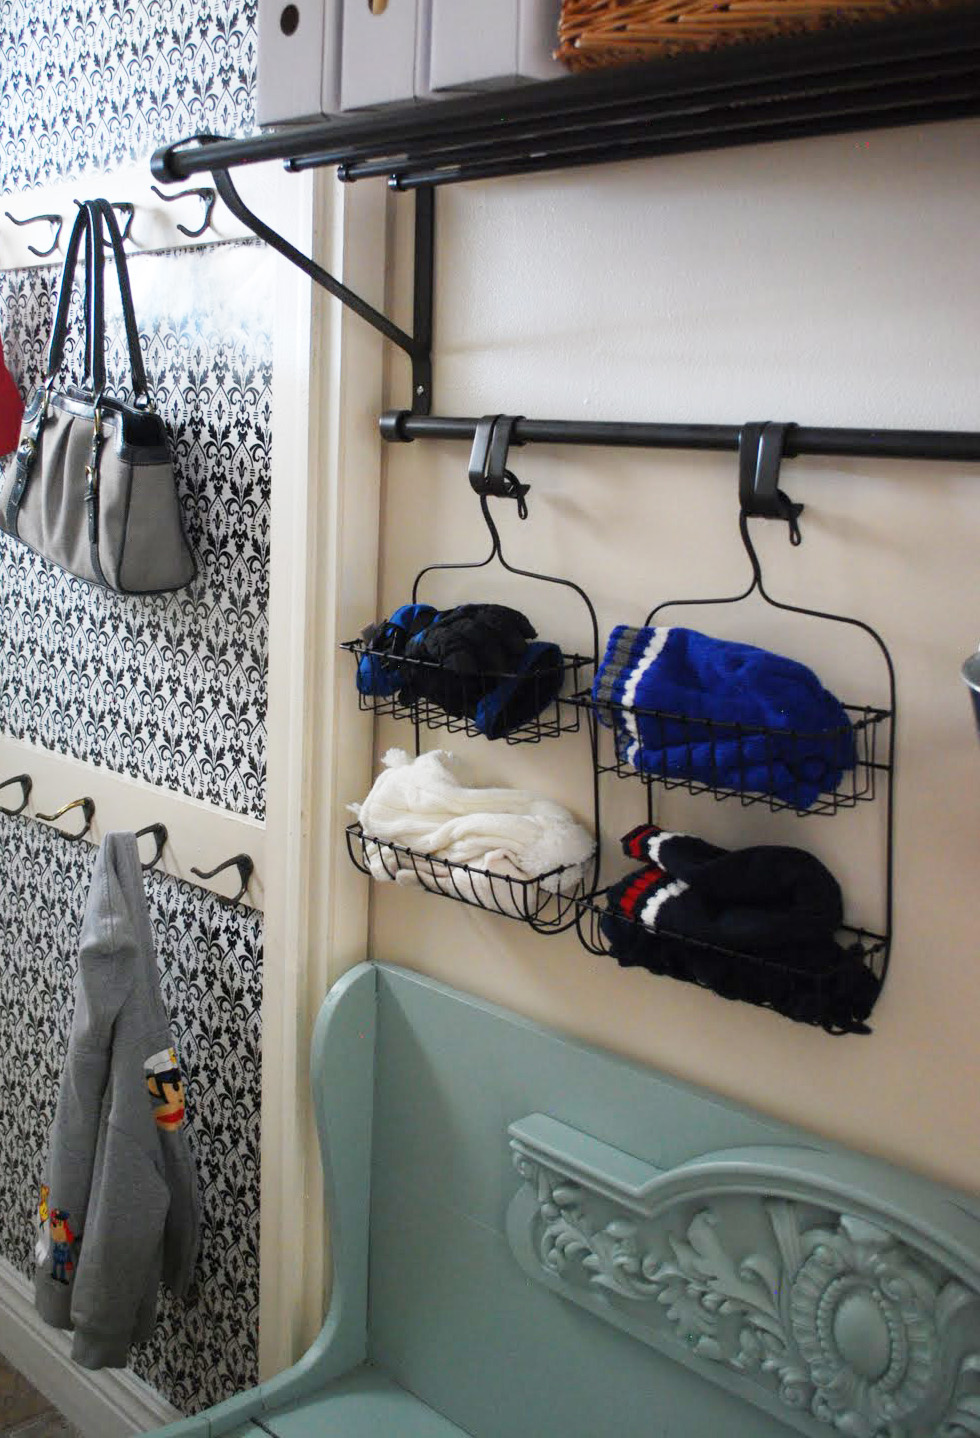 Shower Caddy Organize Hats Gloves